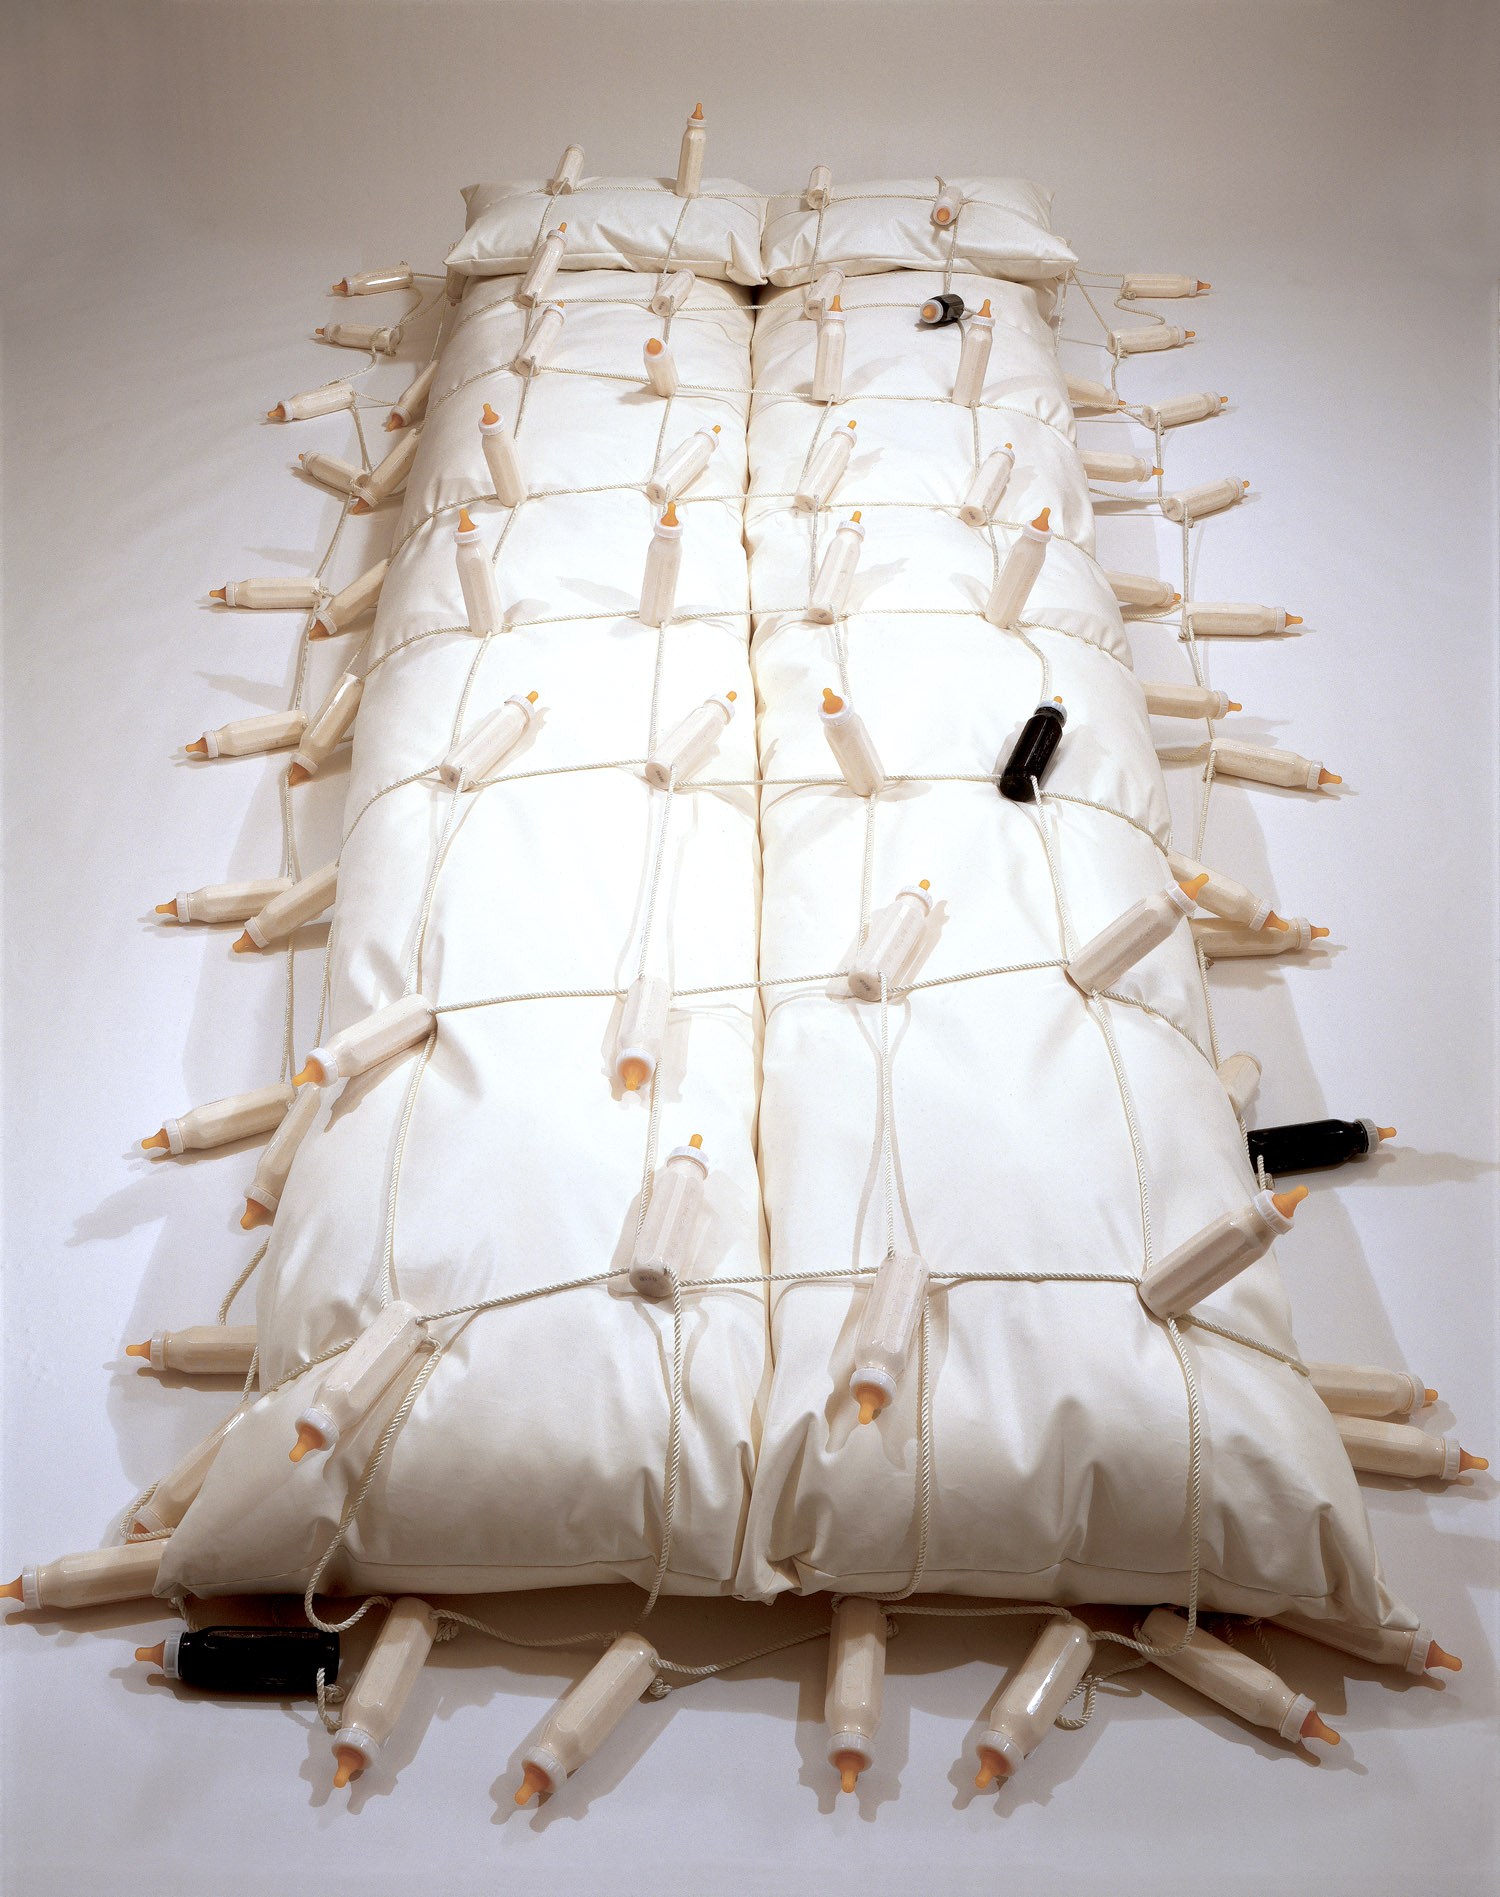 1989